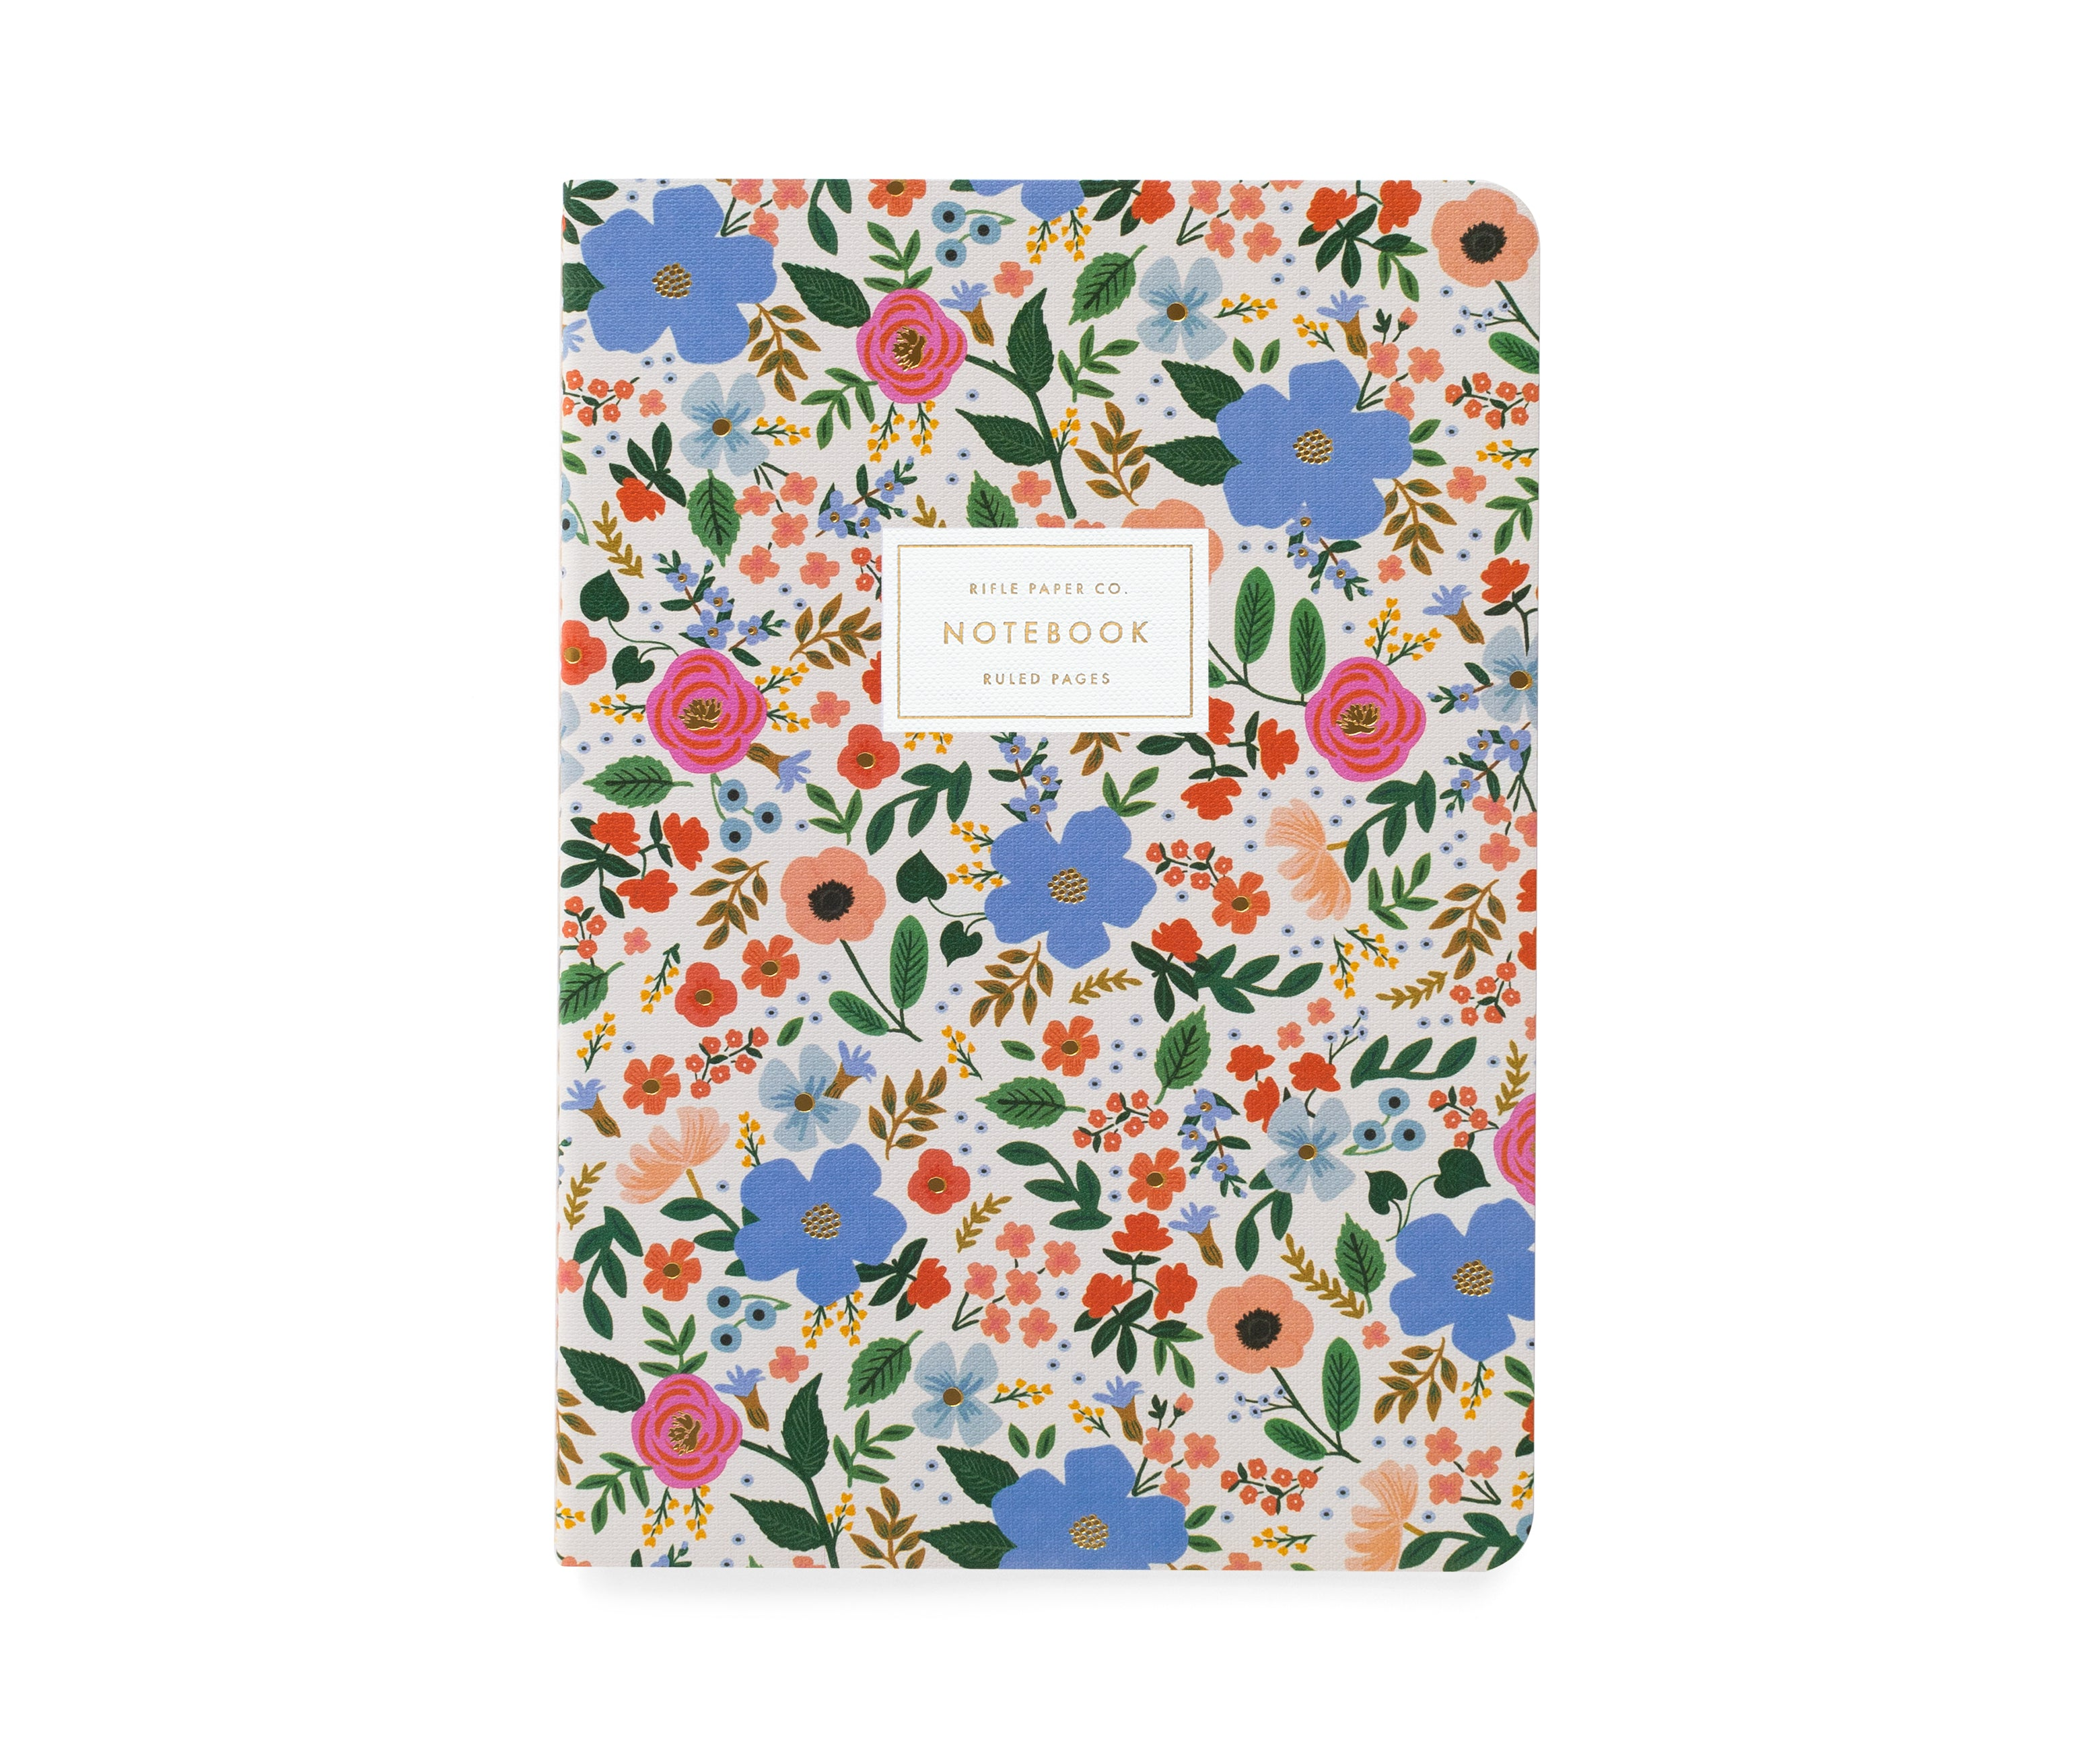 Stitched Notebook Set, Wild Rose